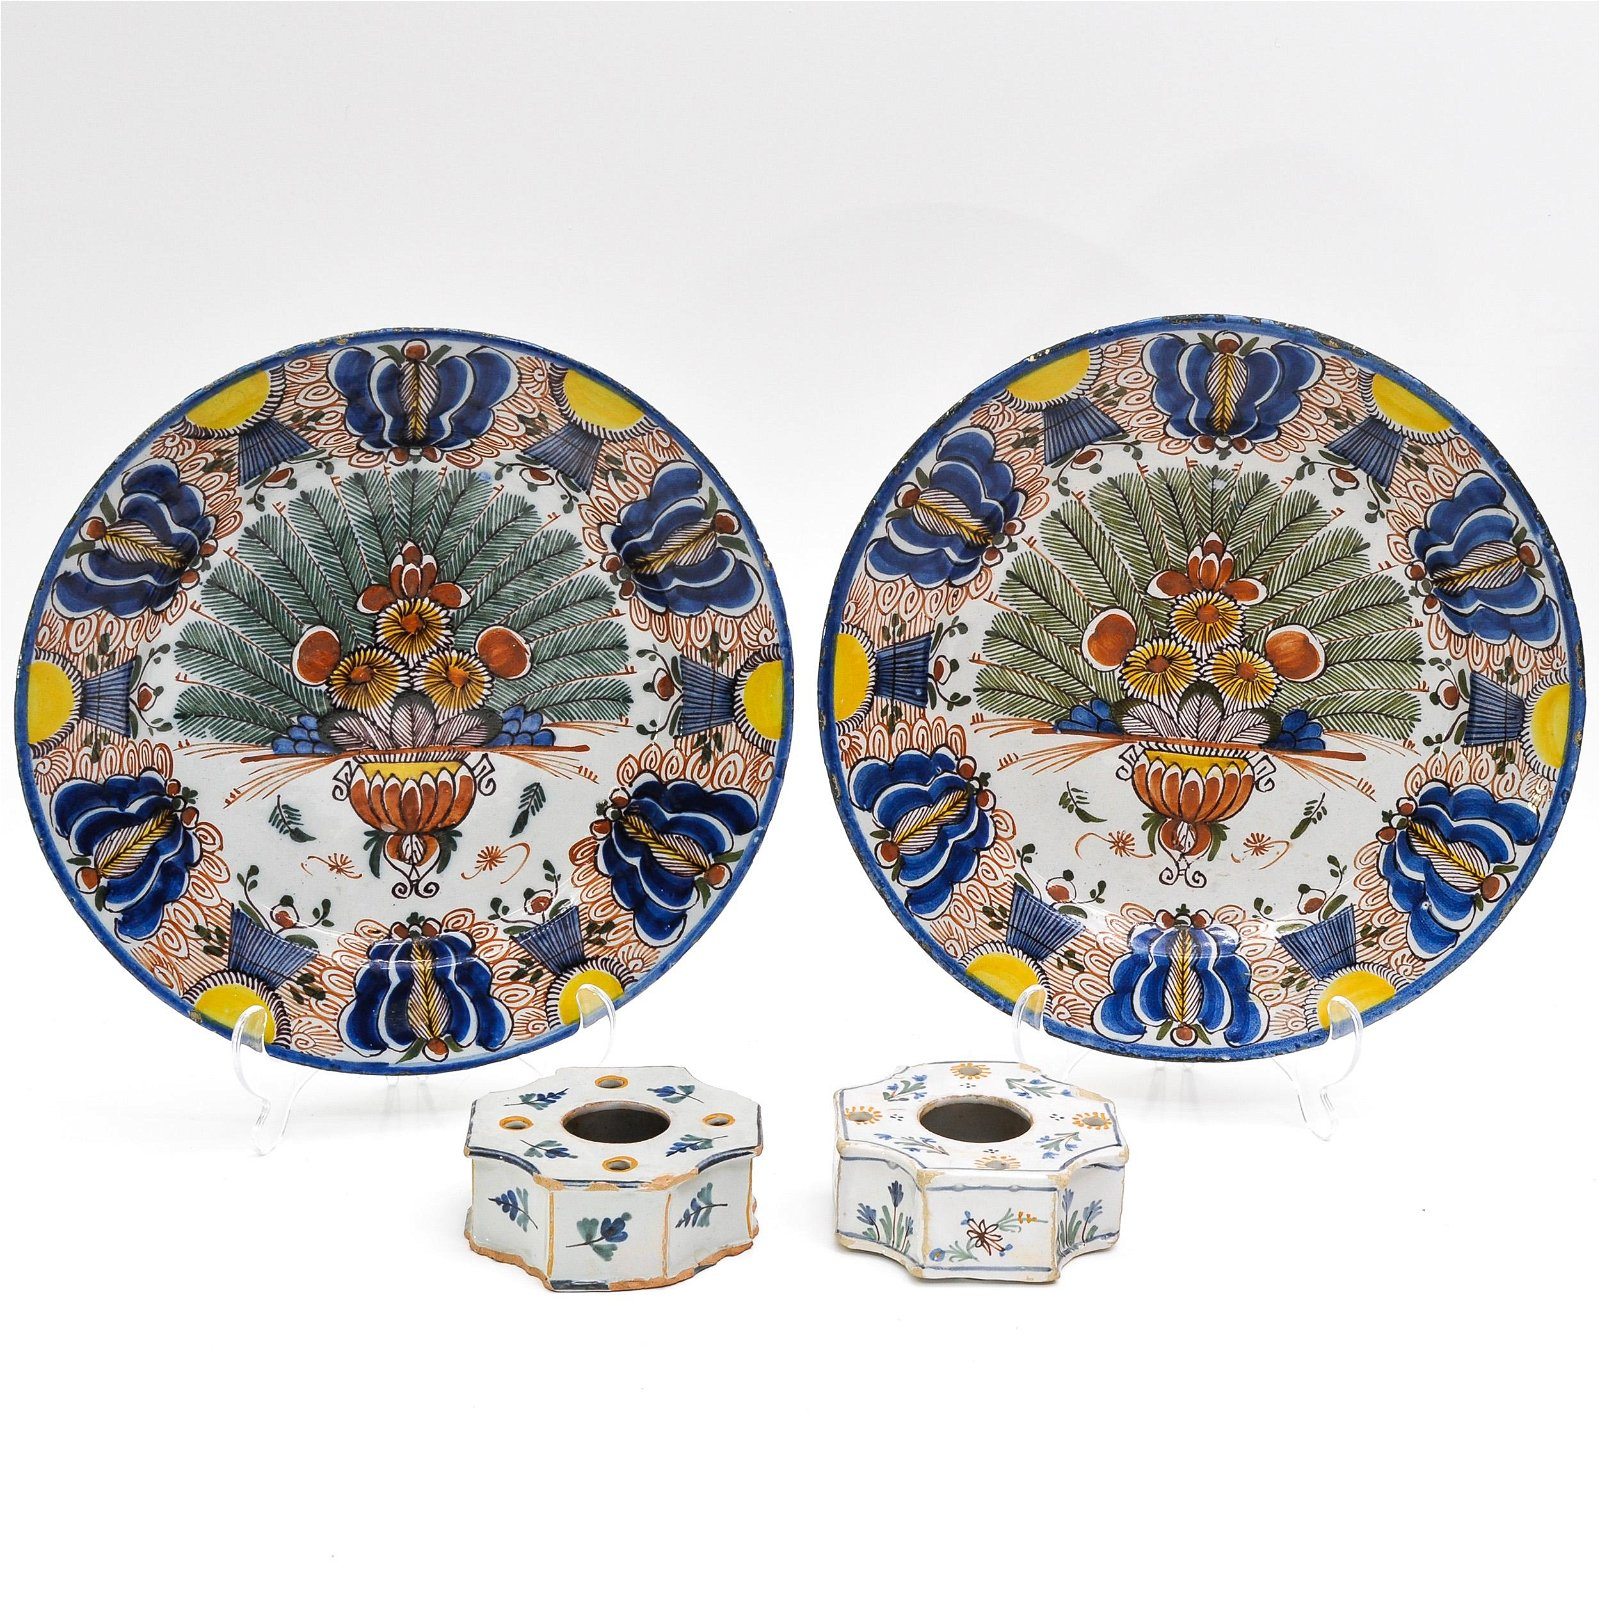 Two 18th Century Delft Plates and Ink Wells